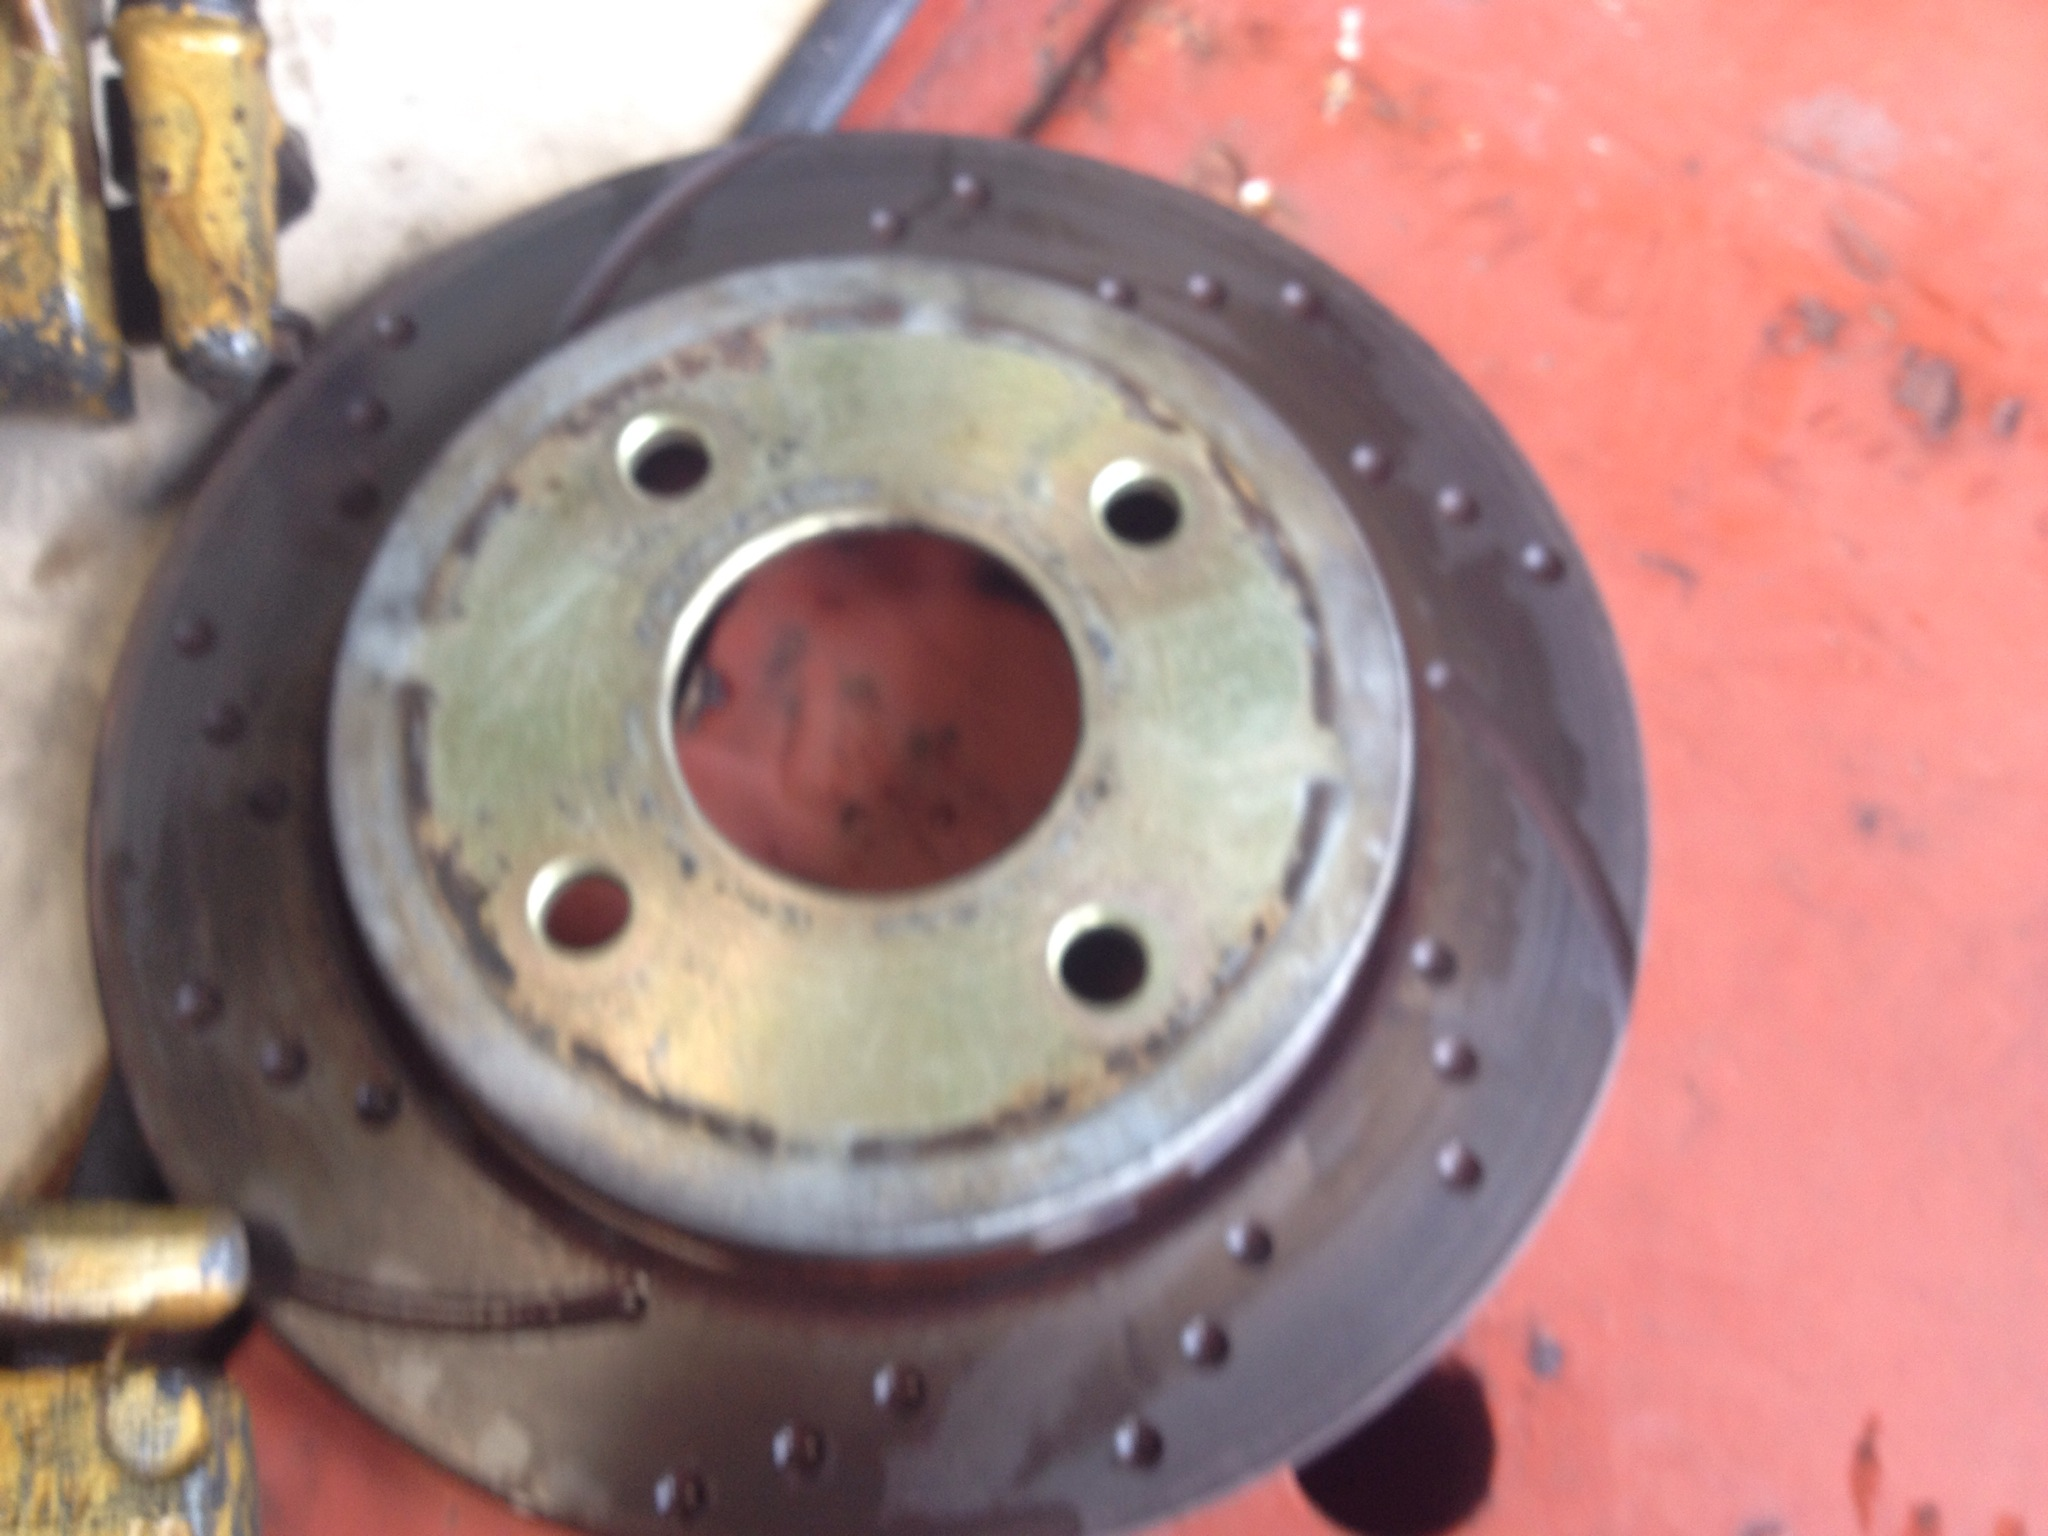 ford fiesta st150 rear brake set up inc drilled and grove discs ford bits. Black Bedroom Furniture Sets. Home Design Ideas